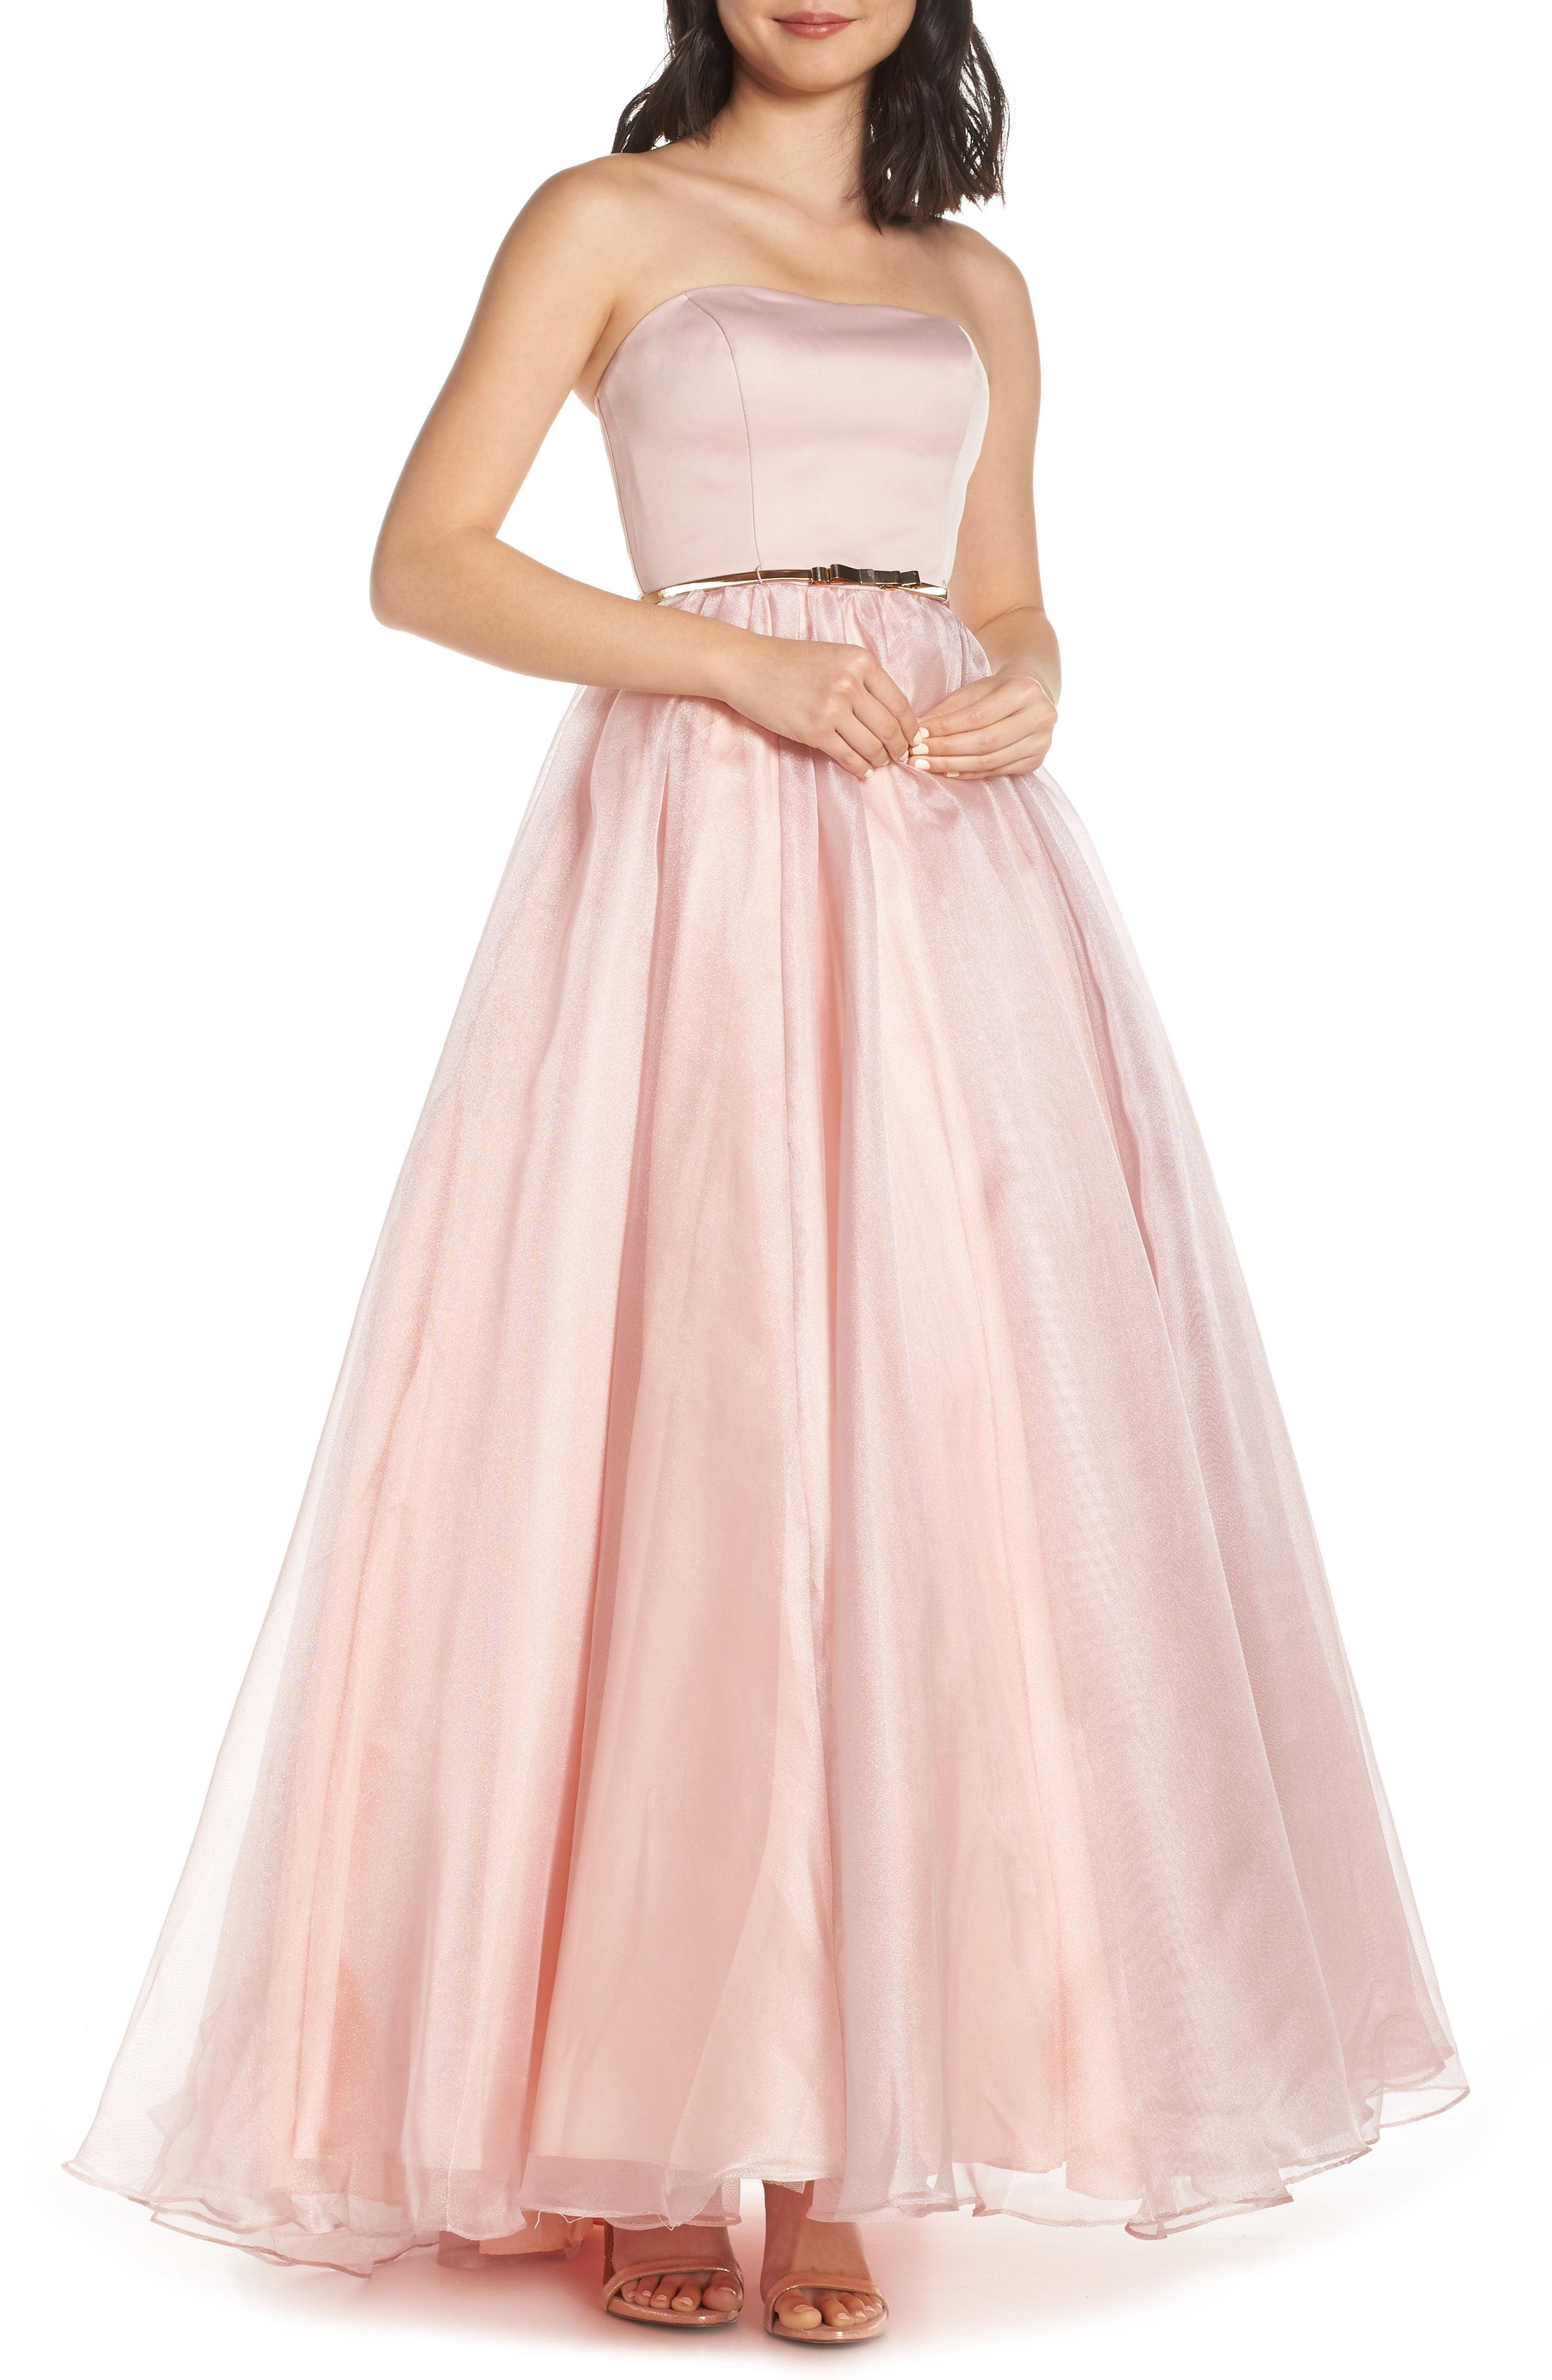 74b3a8b5f50 Lyst - Mac Duggal Strapless Belted Evening Dress in Pink